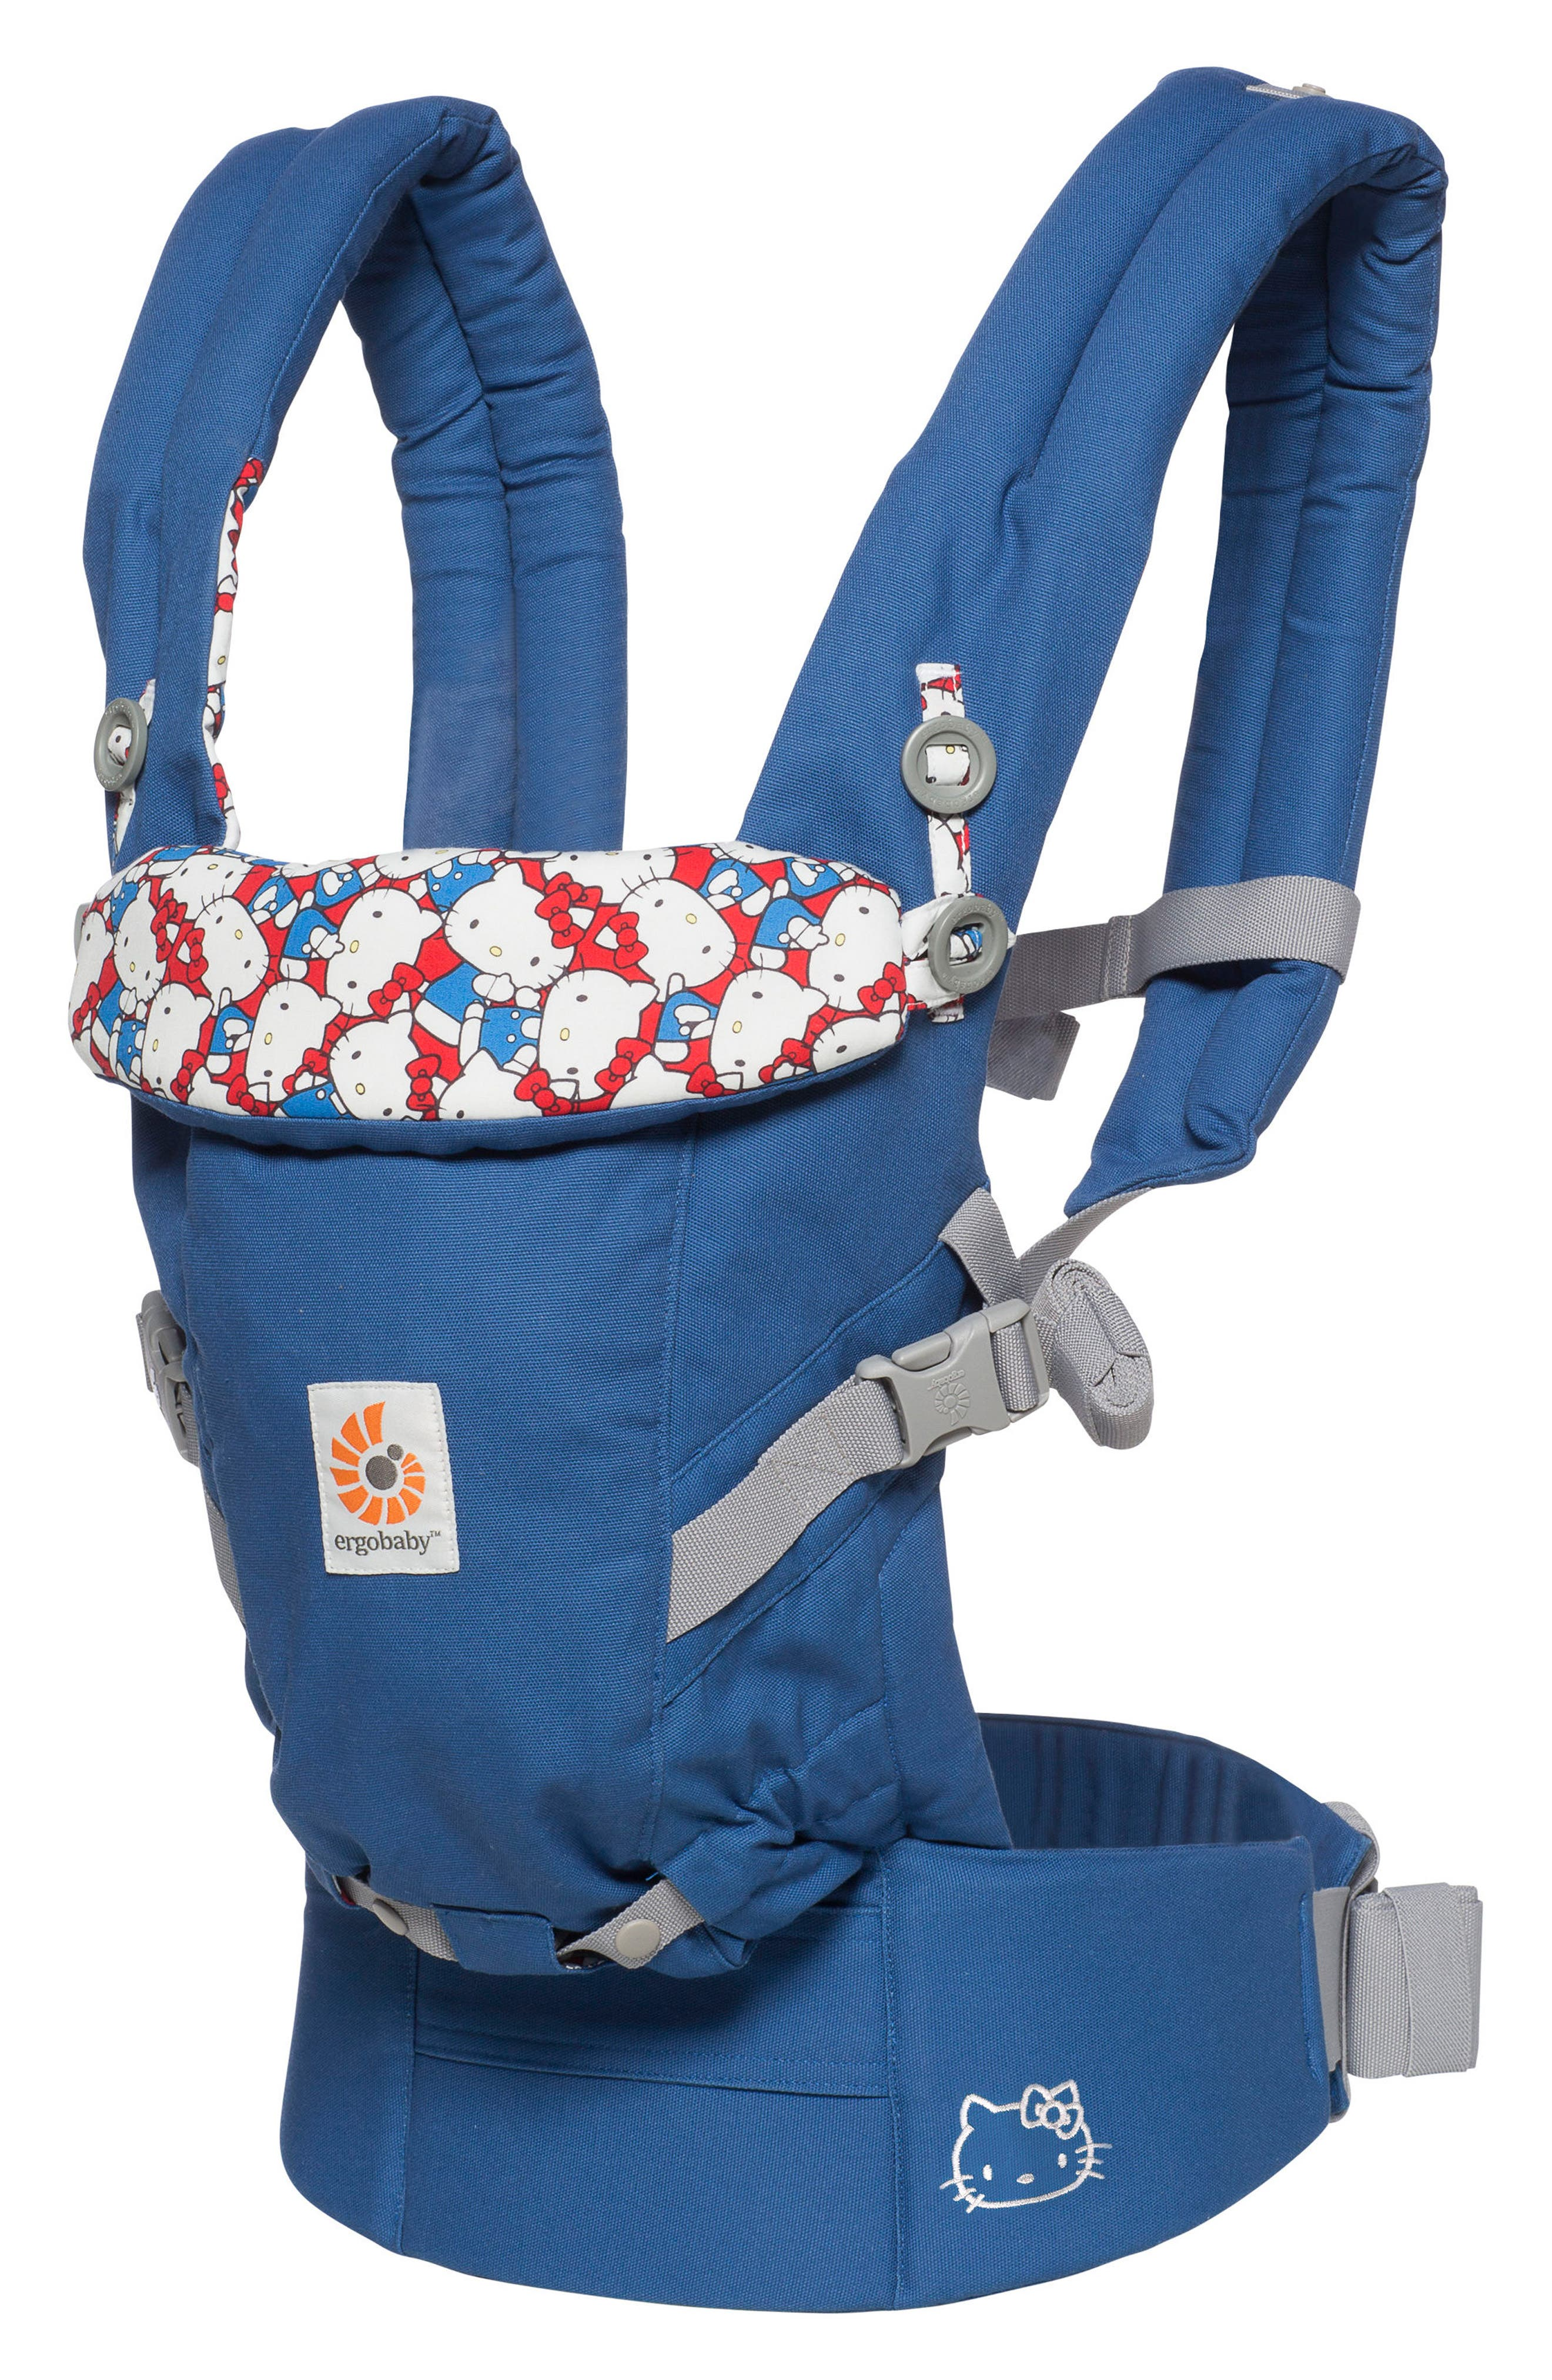 x Hello Kitty<sup>®</sup> Limited Edition Three Position ADAPT Baby Carrier,                             Main thumbnail 1, color,                             400